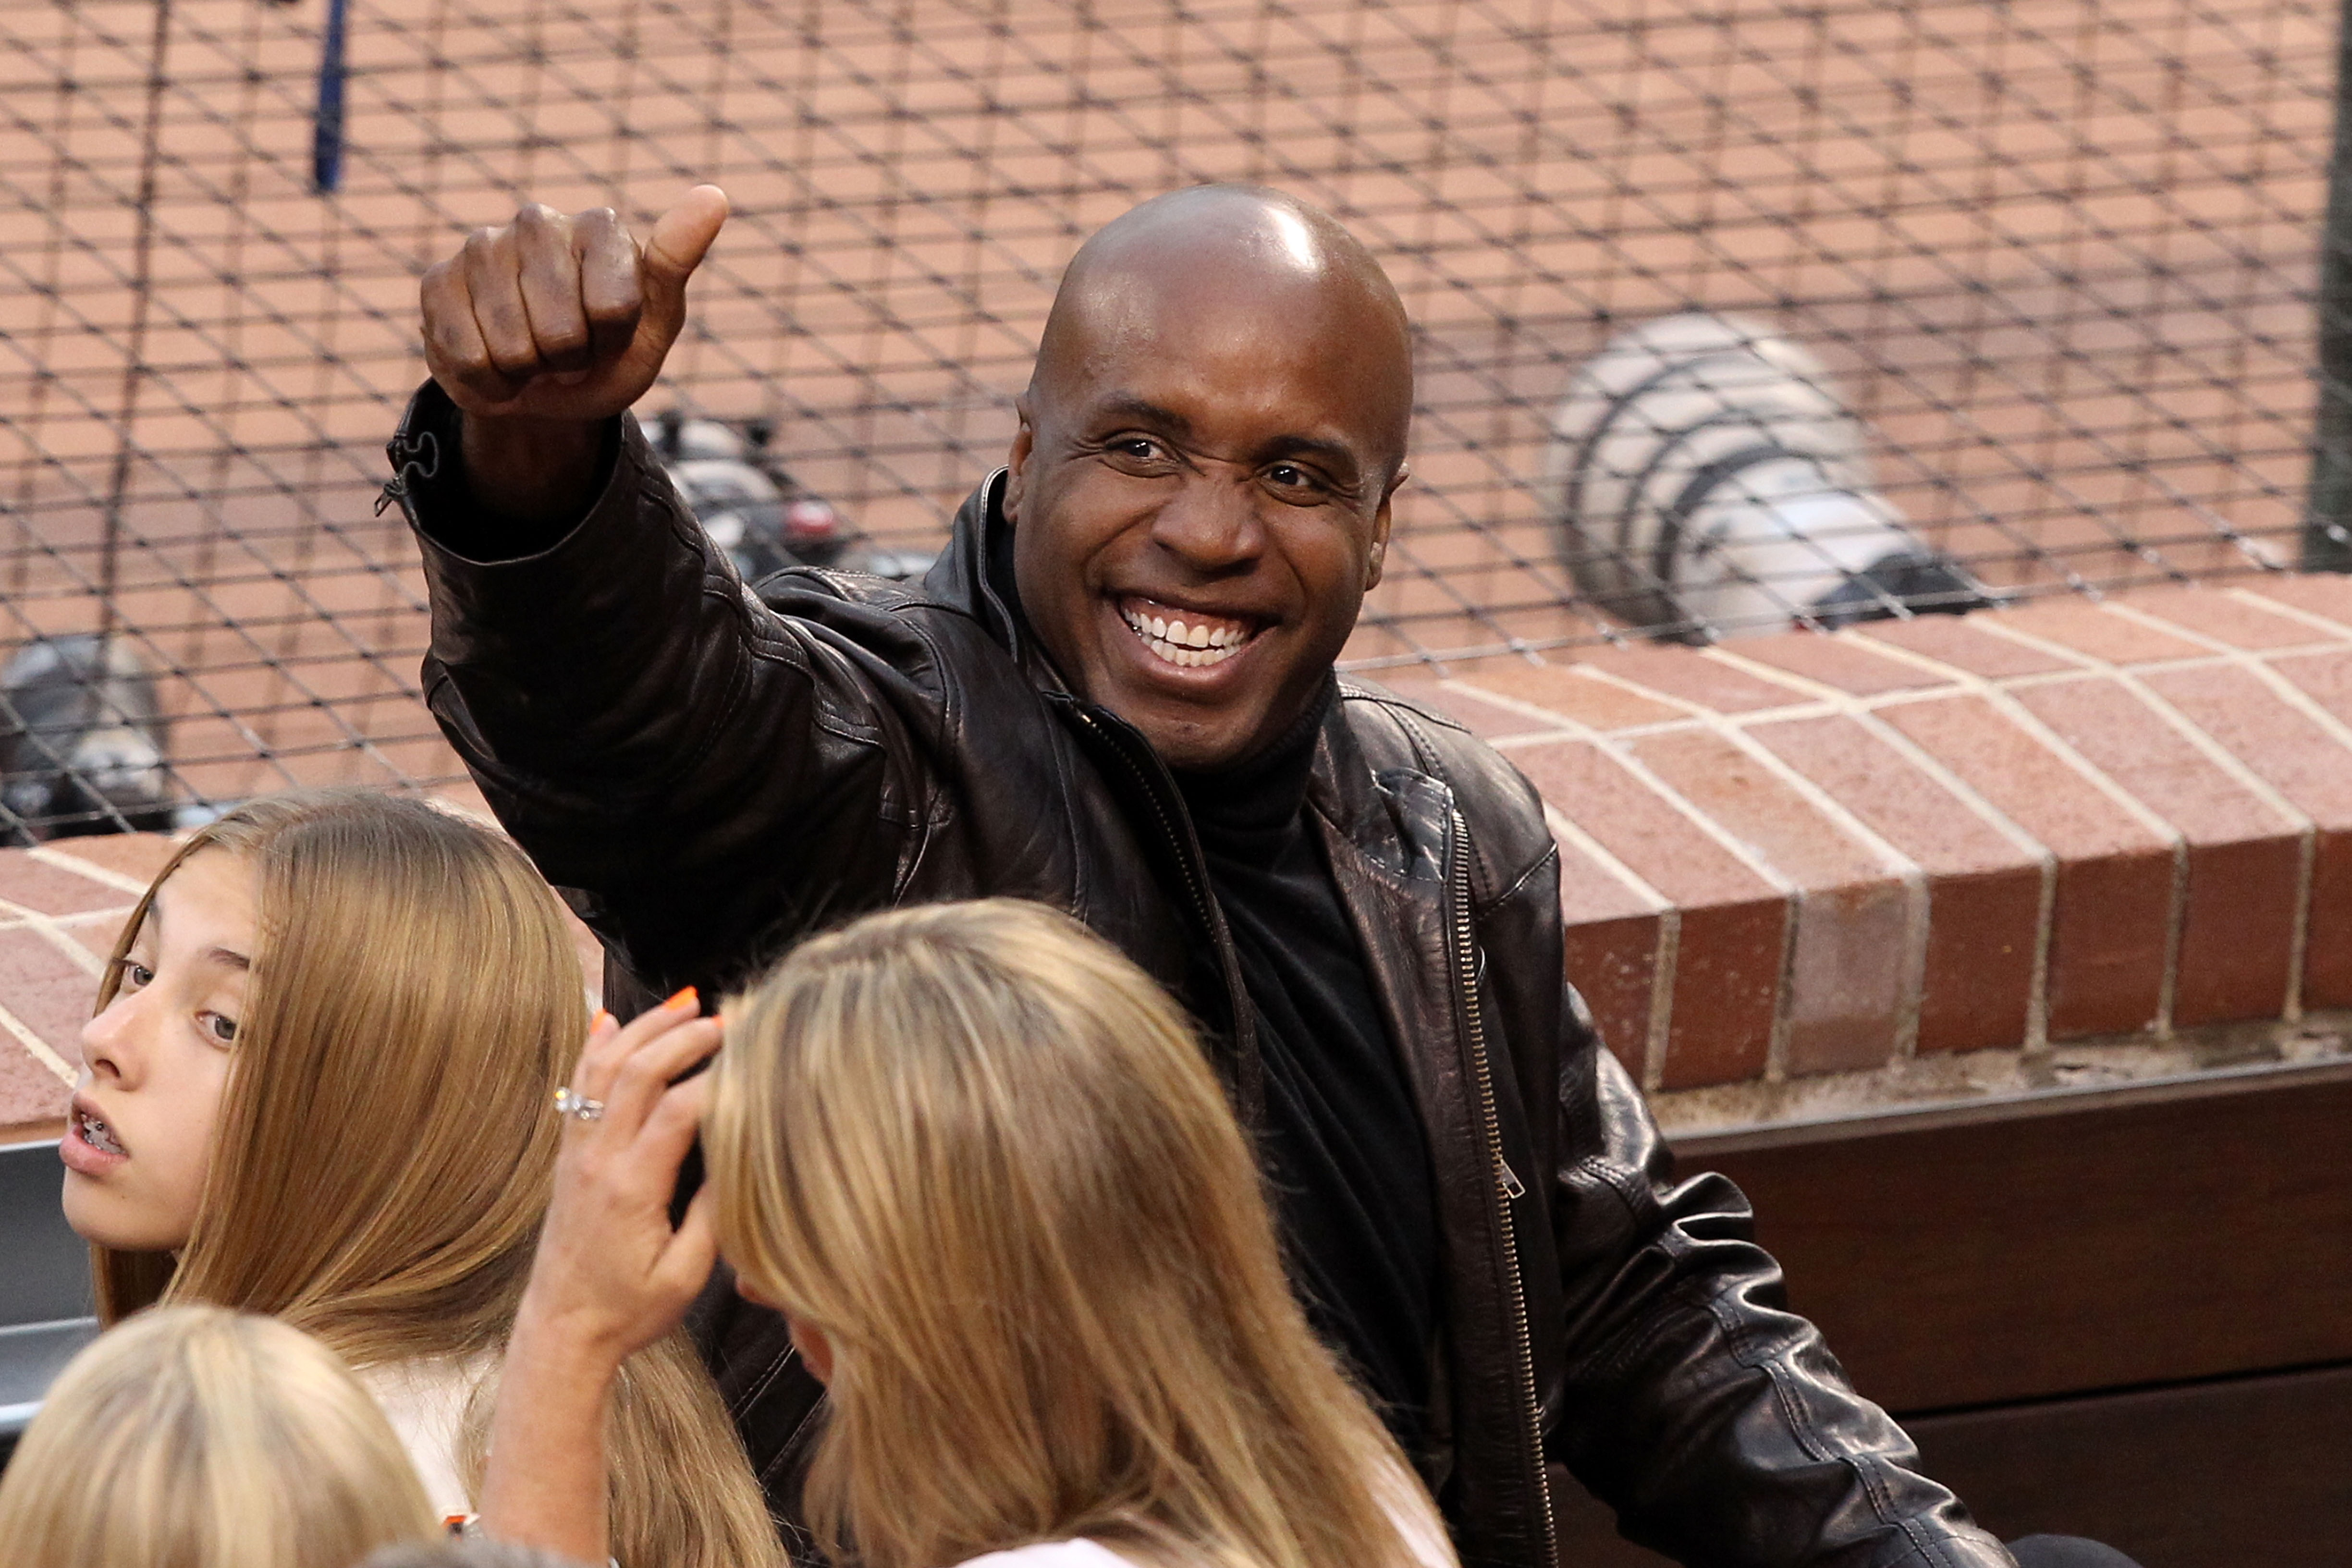 SAN FRANCISCO - OCTOBER 27:  Barry Bonds gestures from his seat during Game One of the 2010 MLB World Series at AT&T Park on October 27, 2010 in San Francisco, California.  (Photo by Christian Petersen/Getty Images)